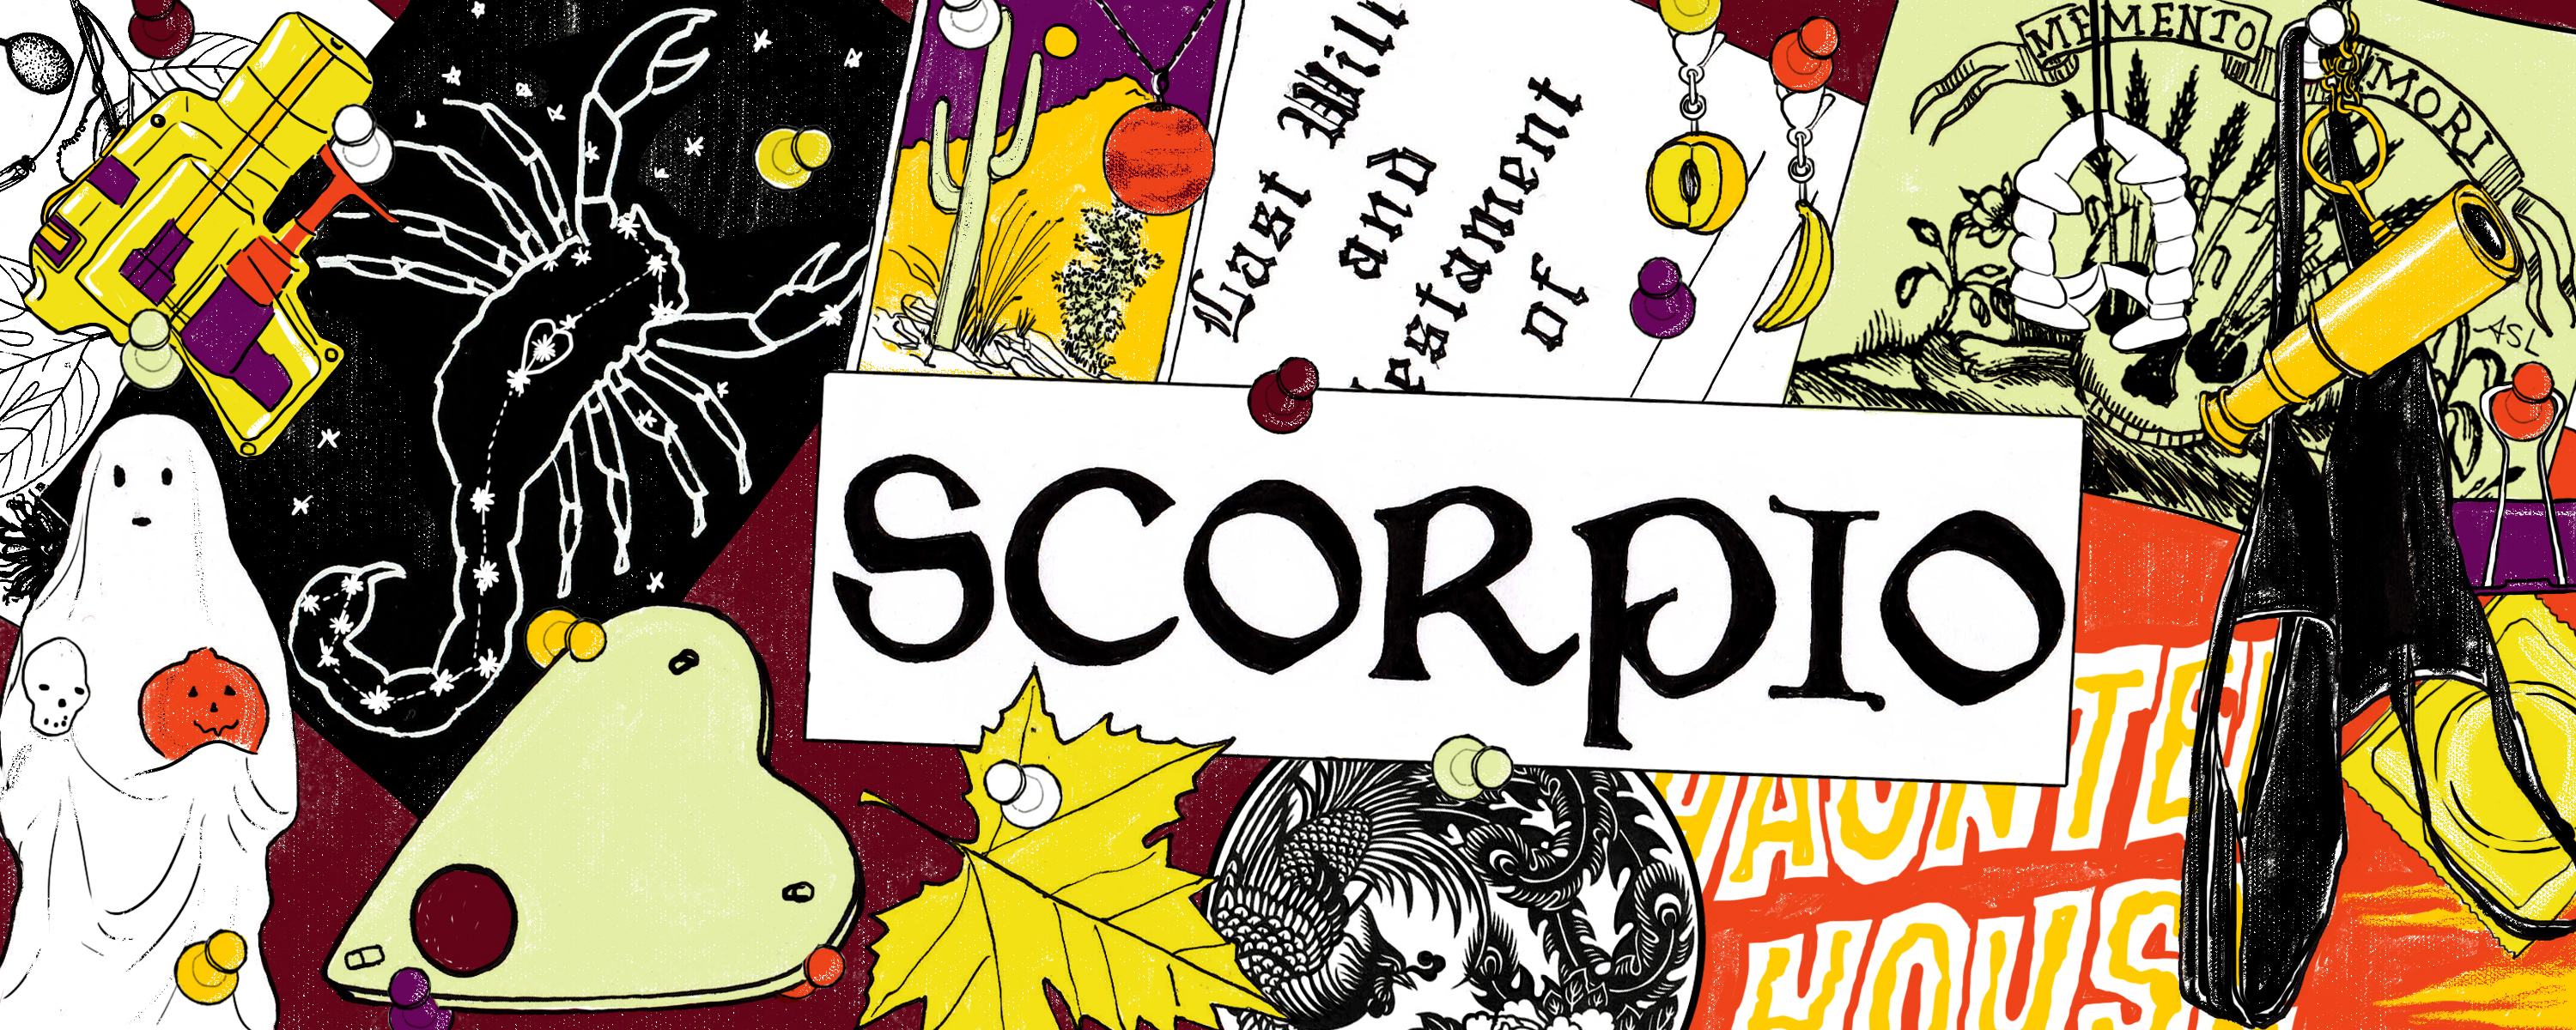 weekly horoscope scorpio october 30 2019